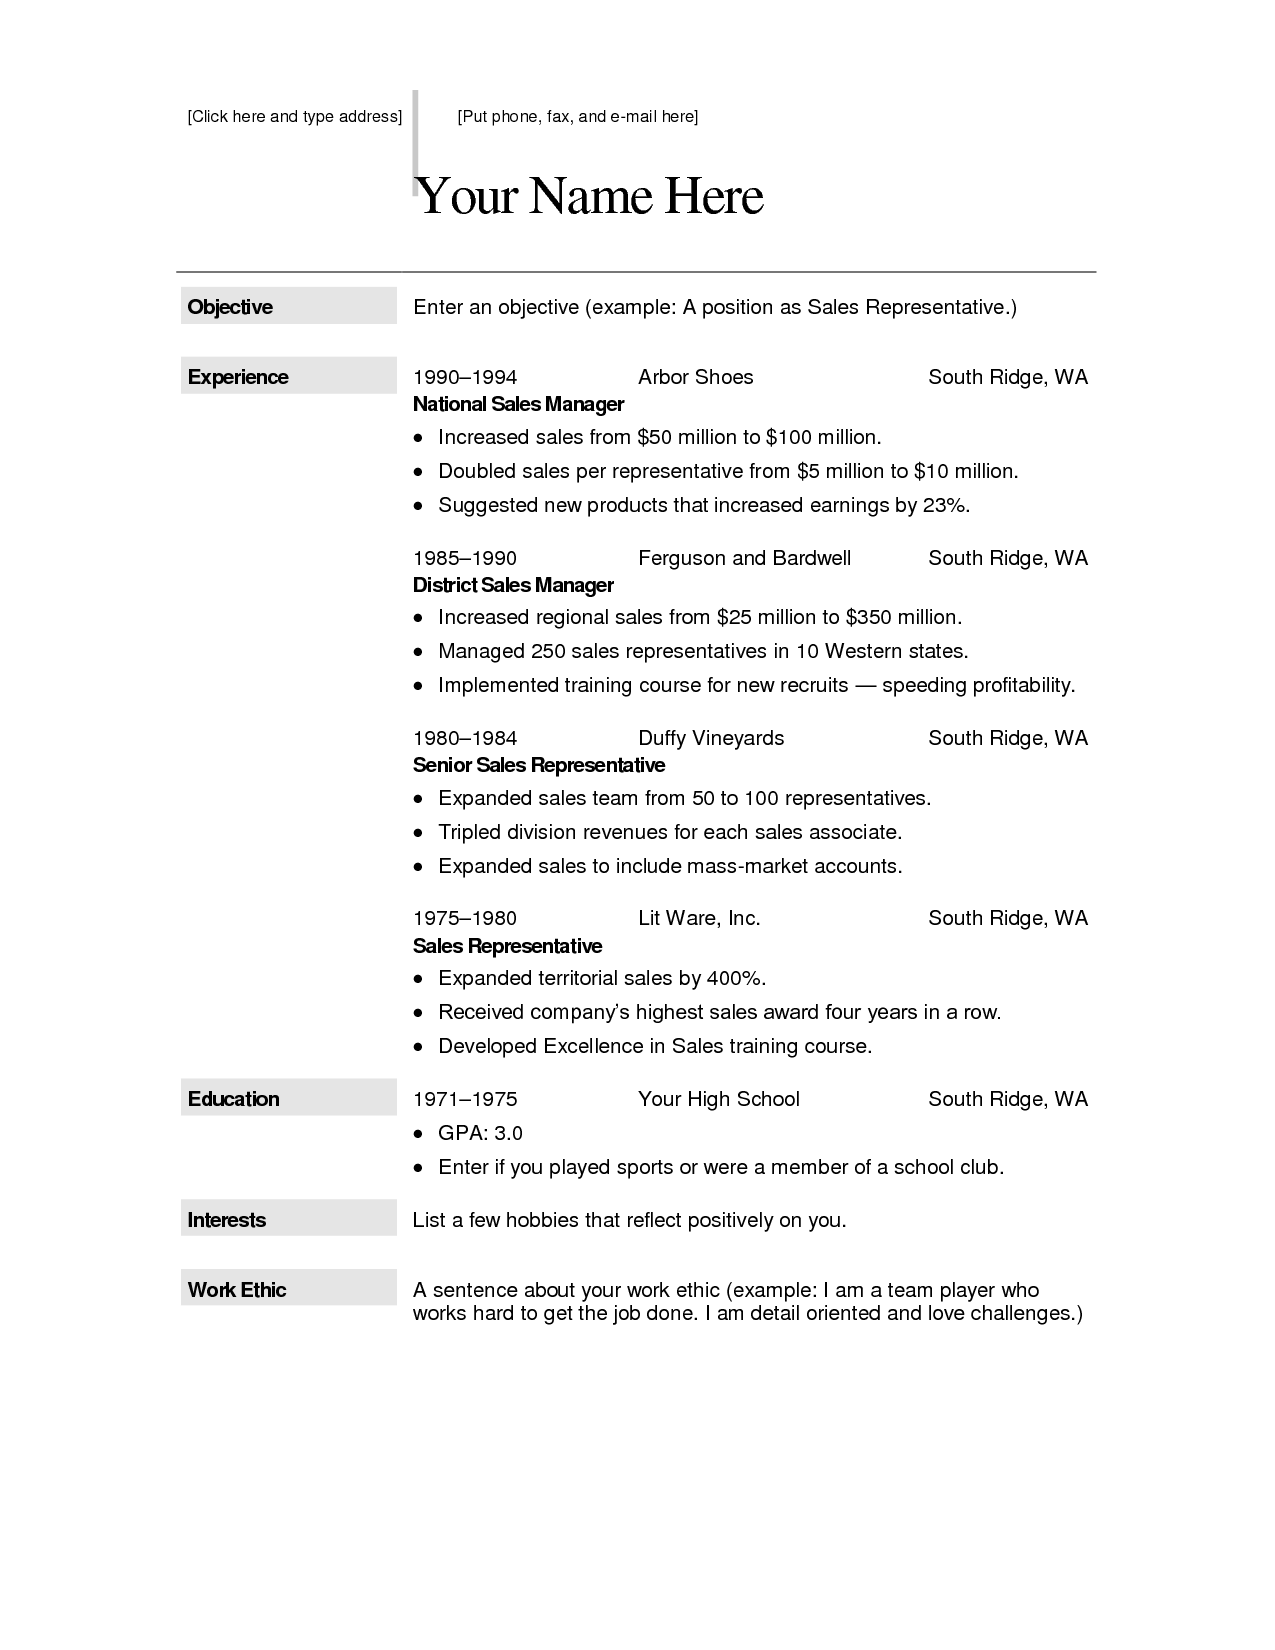 free creative resume templates for macfree creative resume templates for mac modern resume template. Resume Example. Resume CV Cover Letter